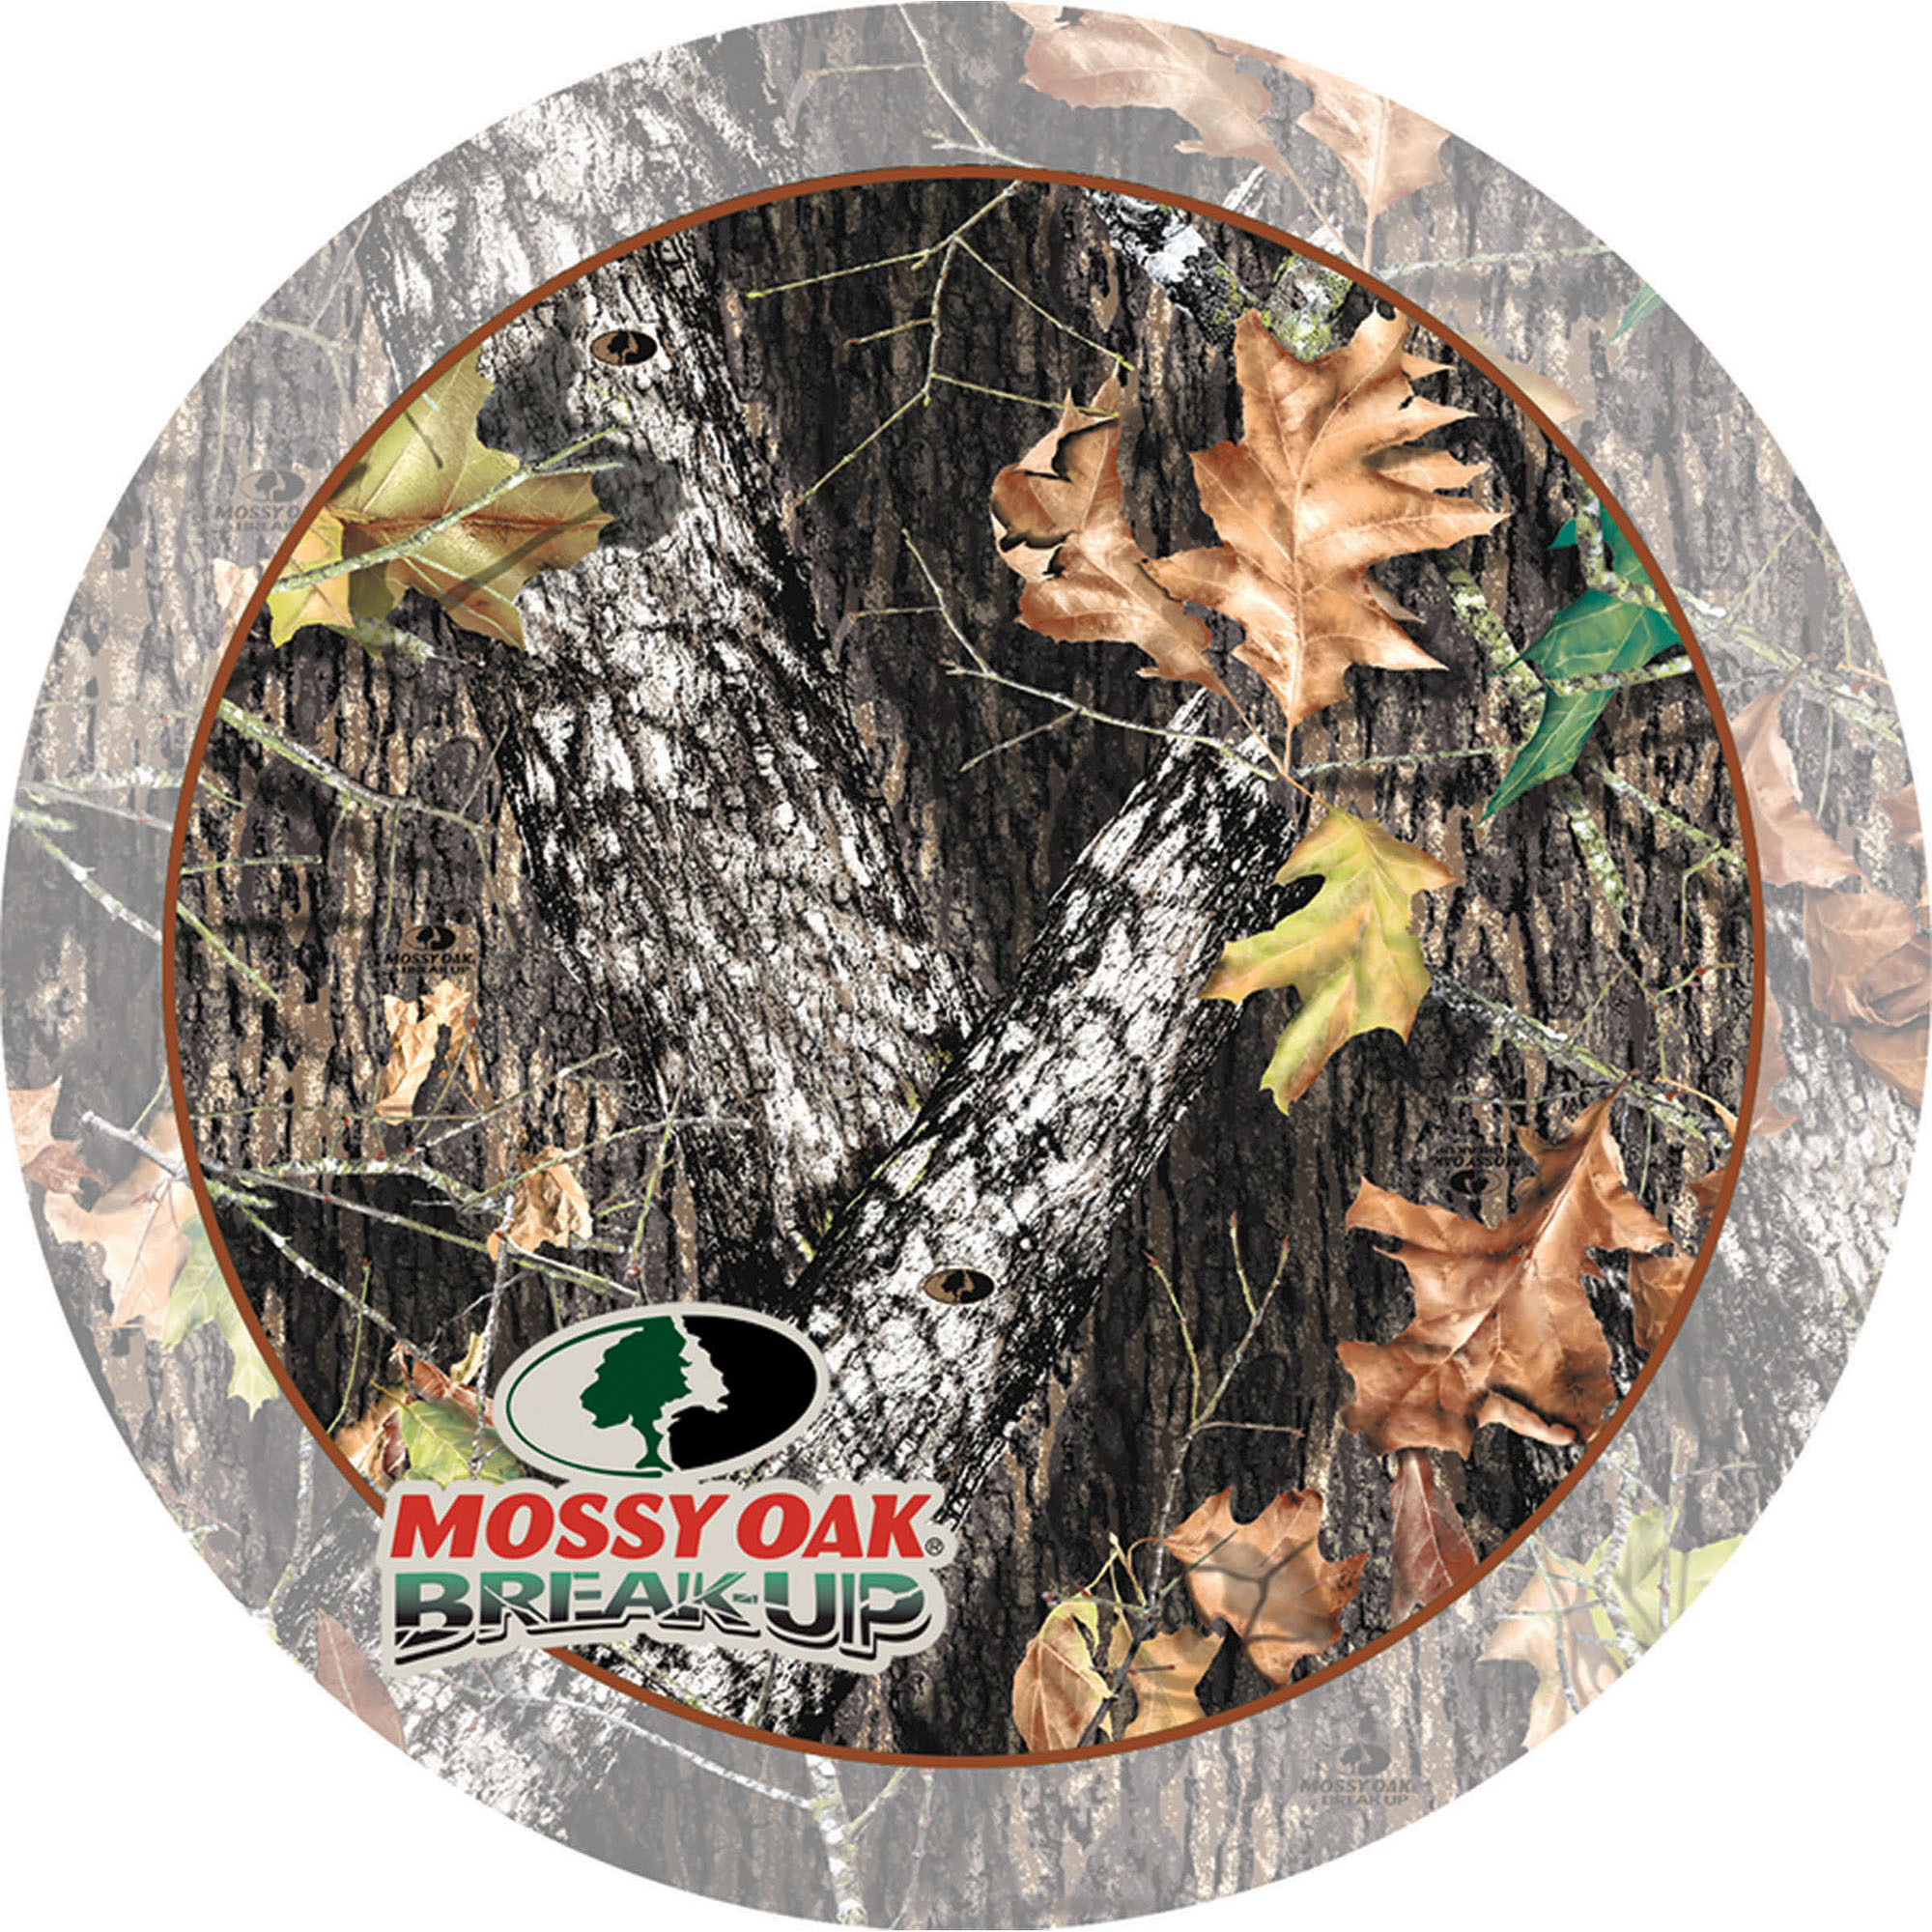 Thirstystone Occasions Drink Coasters, Mossy Oak Break-Up